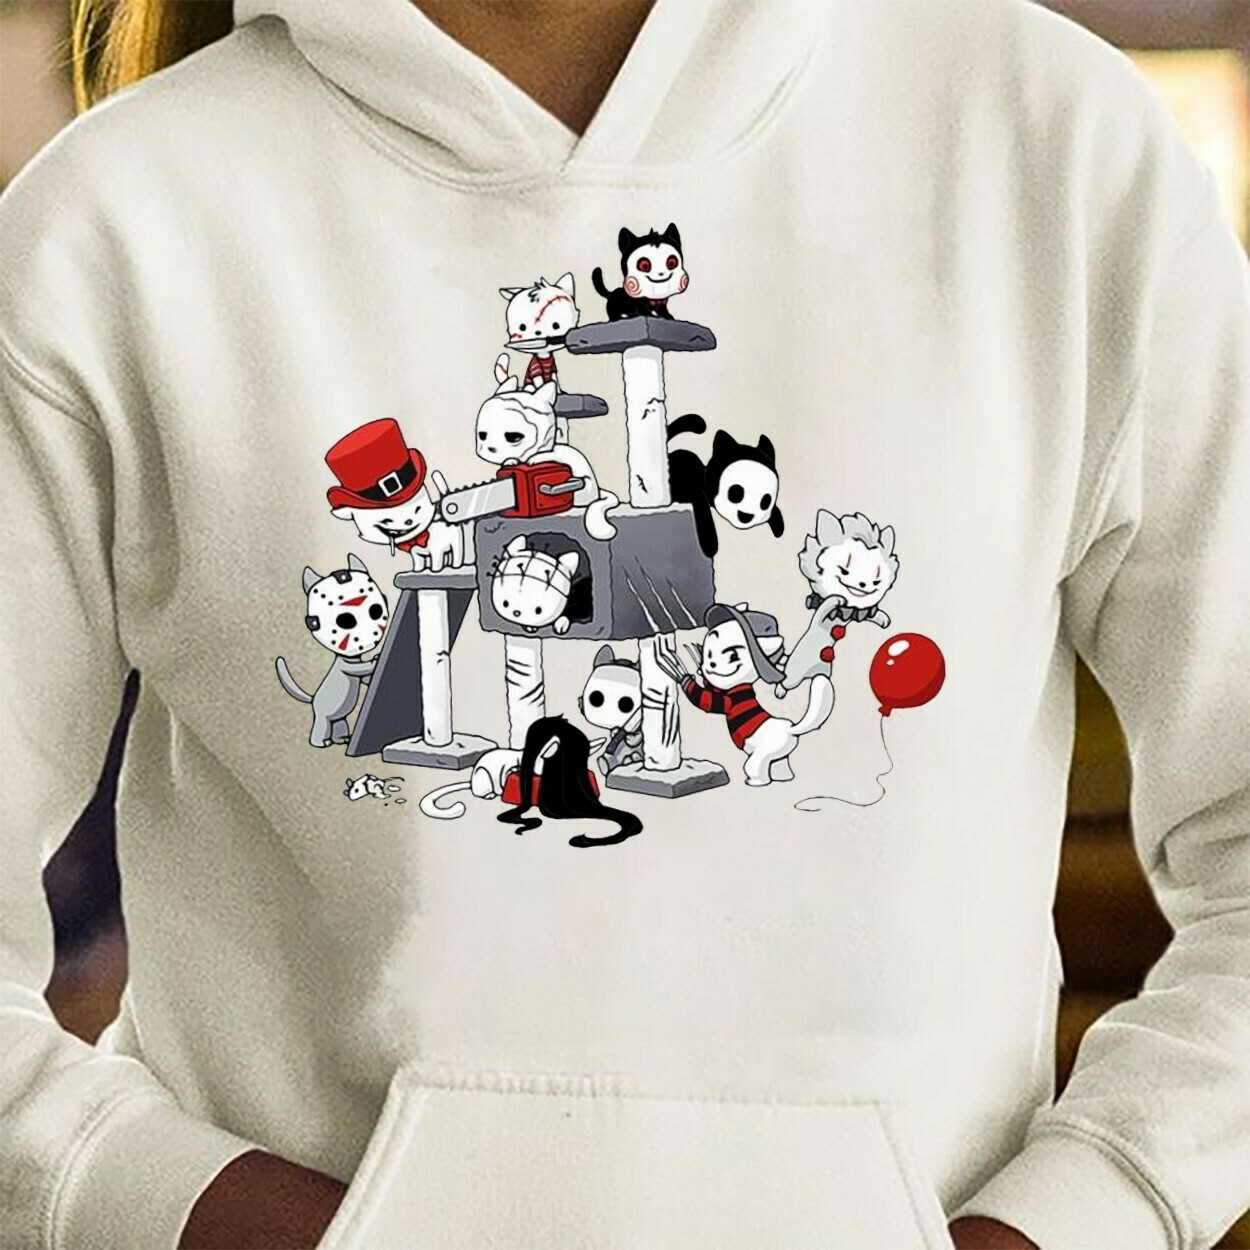 Funny Horror Cat Play Kitten Friend Halloween Squad Friday The 13th Villains Halloween Horror movie mashup Squad Not So Scary Tee T-Shirt Long Sleeve Sweatshirt Hoodie Jolly Family Gifts